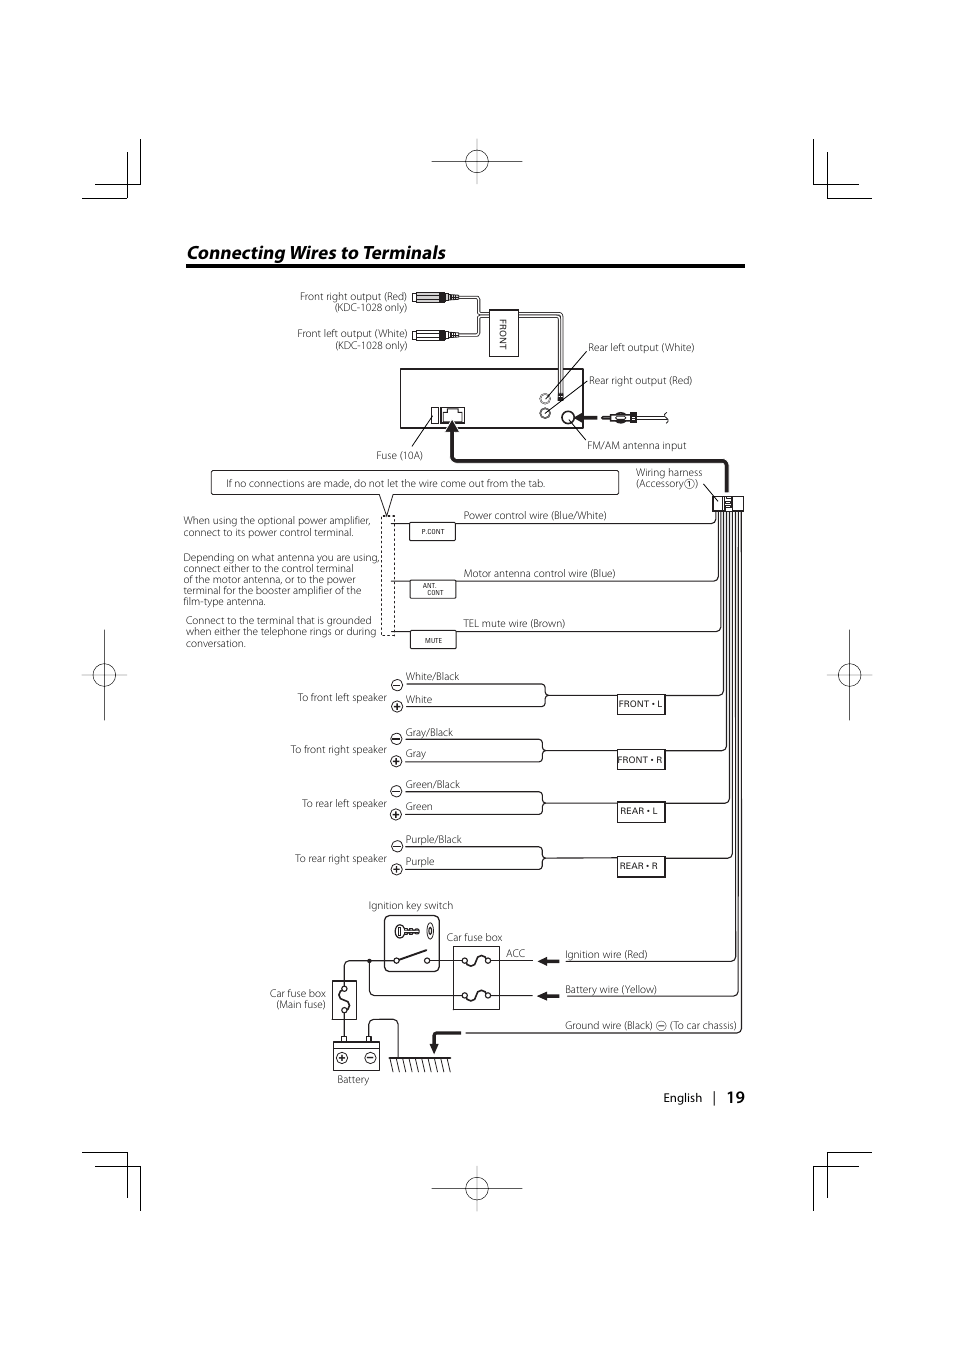 kdc 2025 wiring diagram wiring diagram general